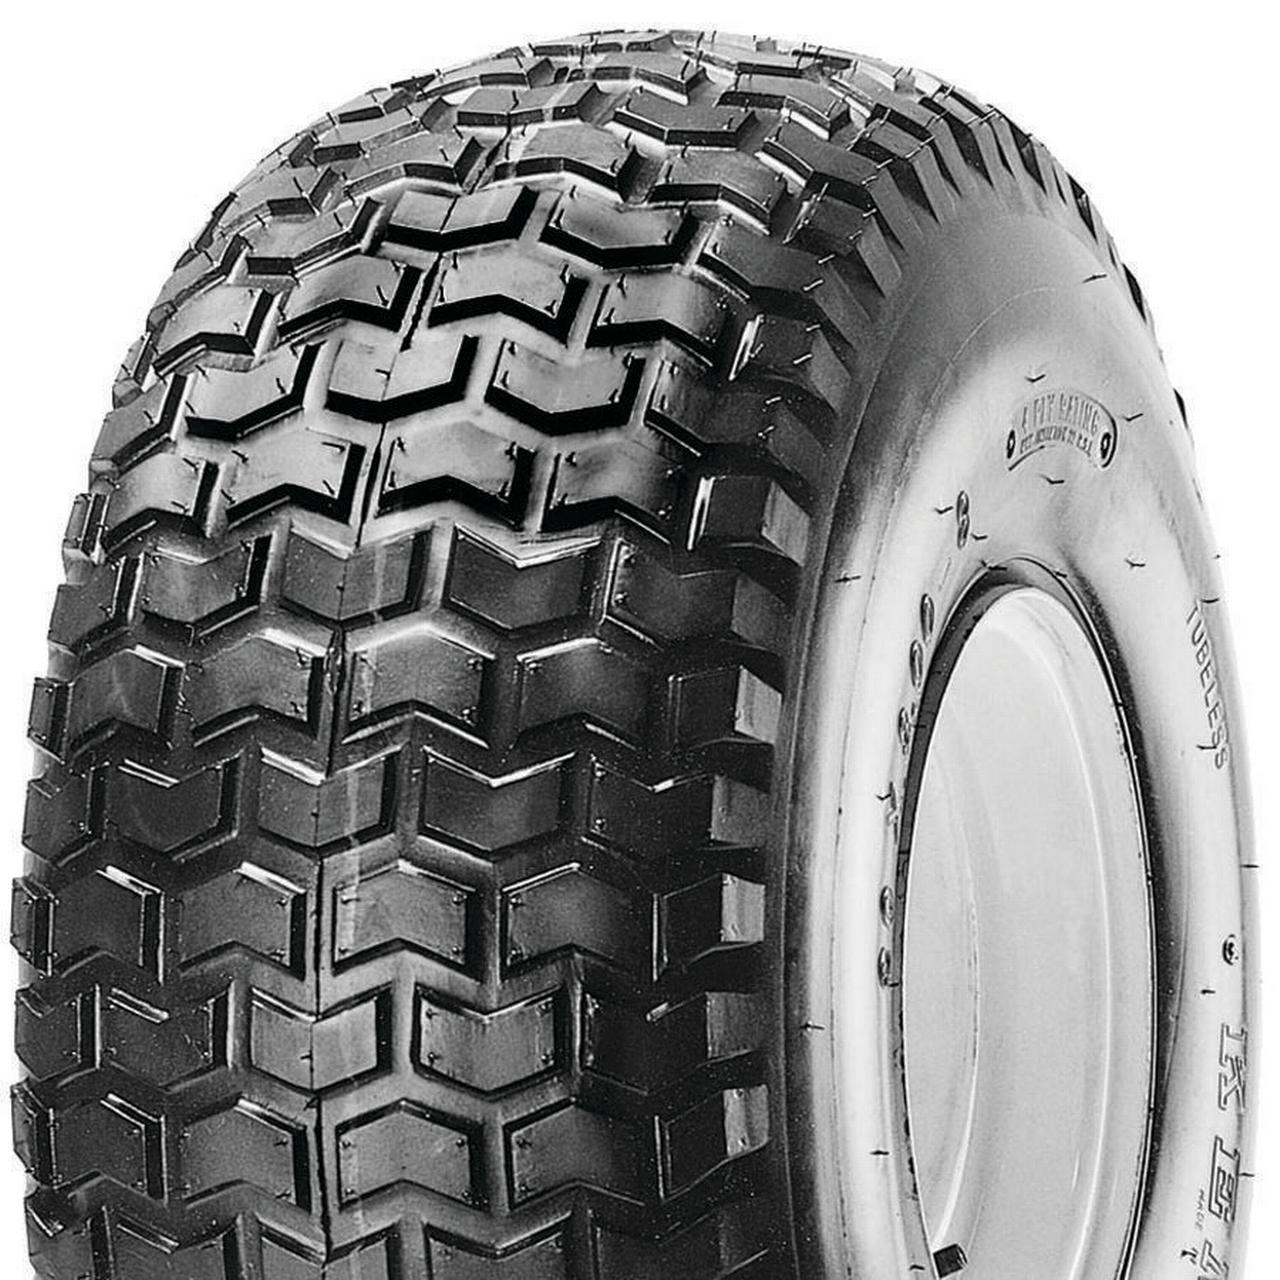 Martin Wheel 808-2TR-I Tubeless Tire Turf Rider, For Use With 8 X 7 in Wheel